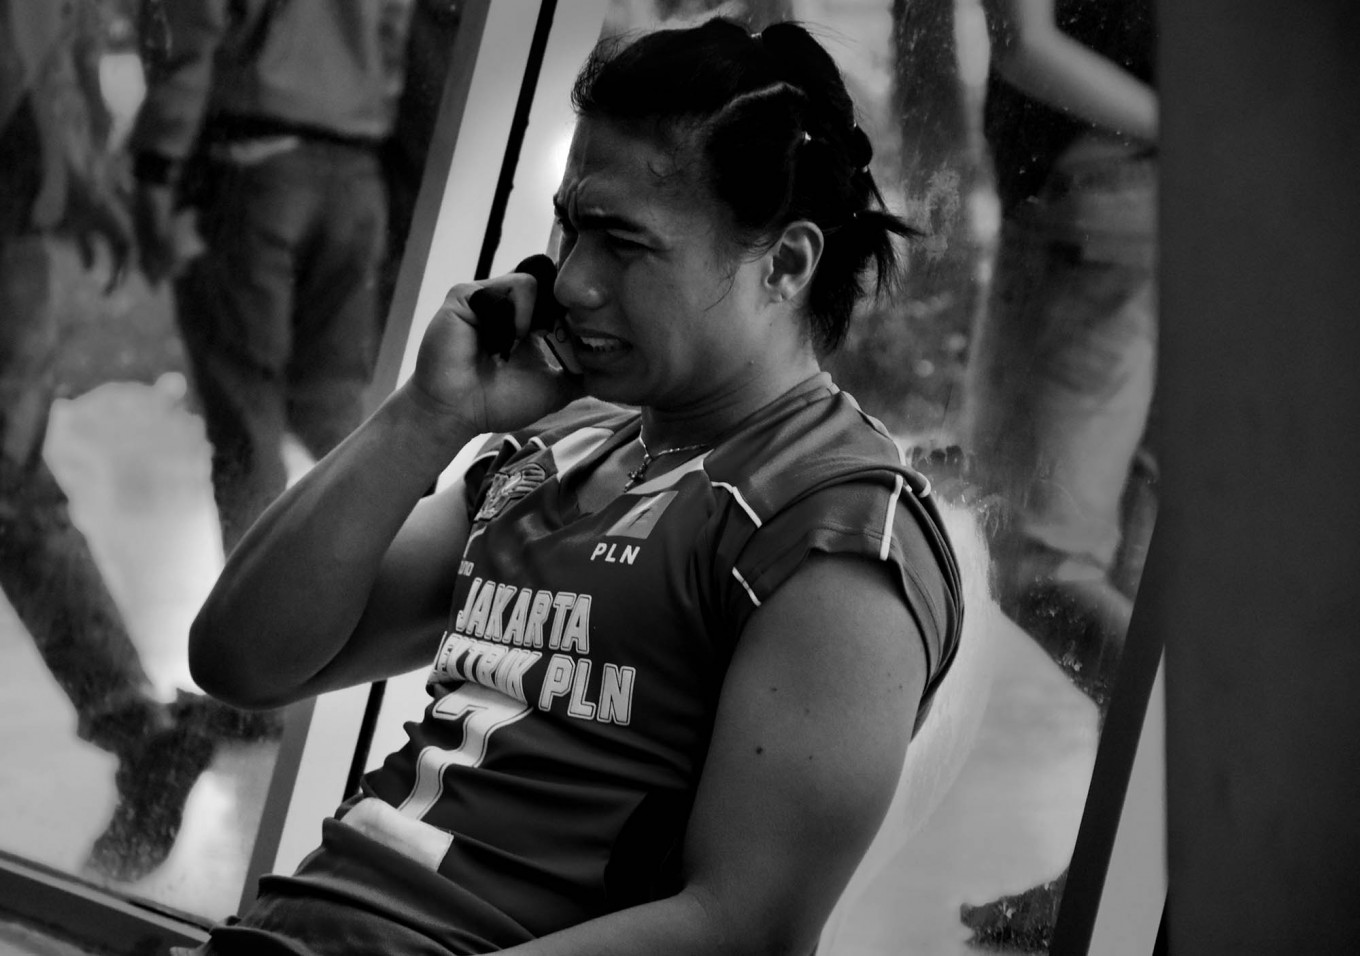 Aprilia Manganang of the Jakarta Elektrik PLN makes a phone call while crying after her team lost on March 18. JP/Aman Rochman